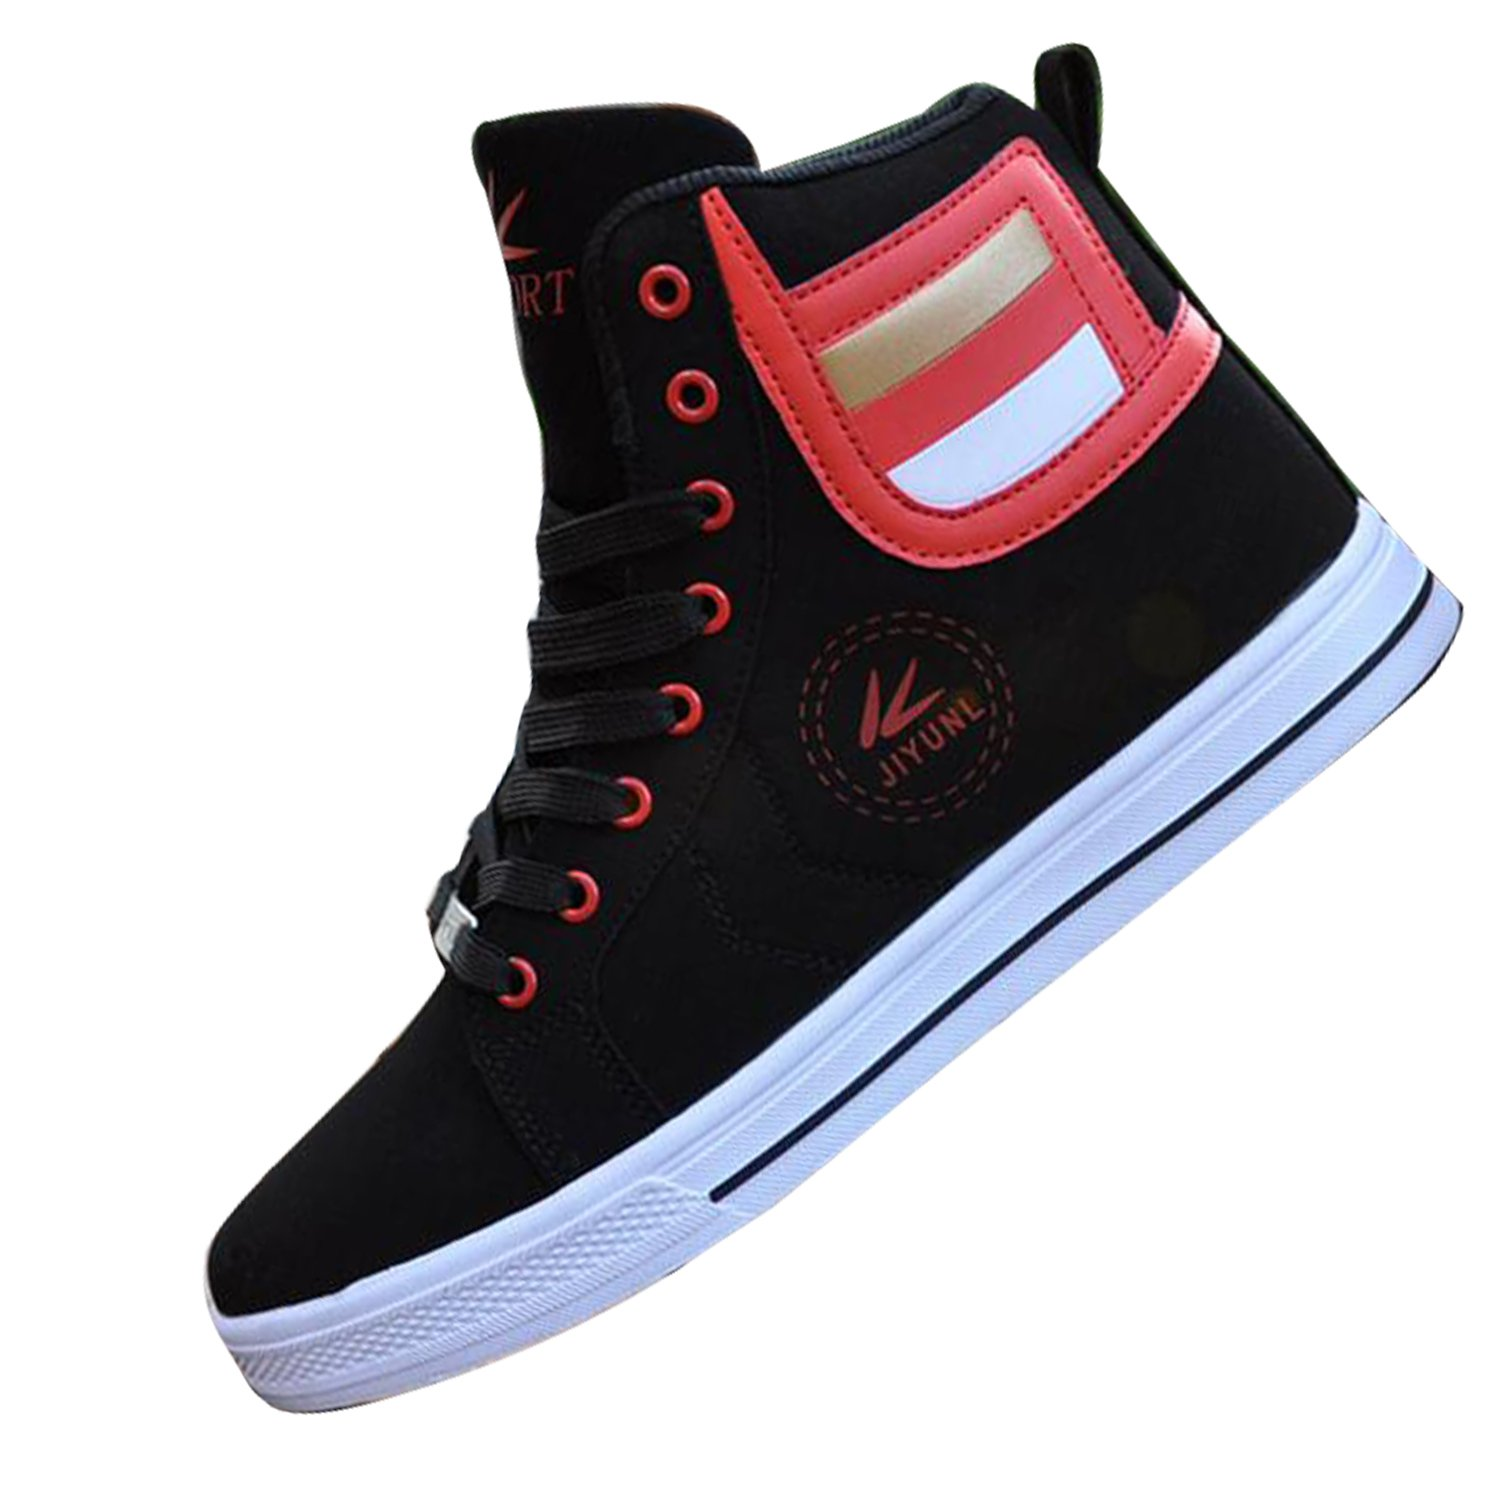 c184b73a06475 Amazon.com | Gaorui Lot Fashion Men Casual Shoe High Top Sport ...